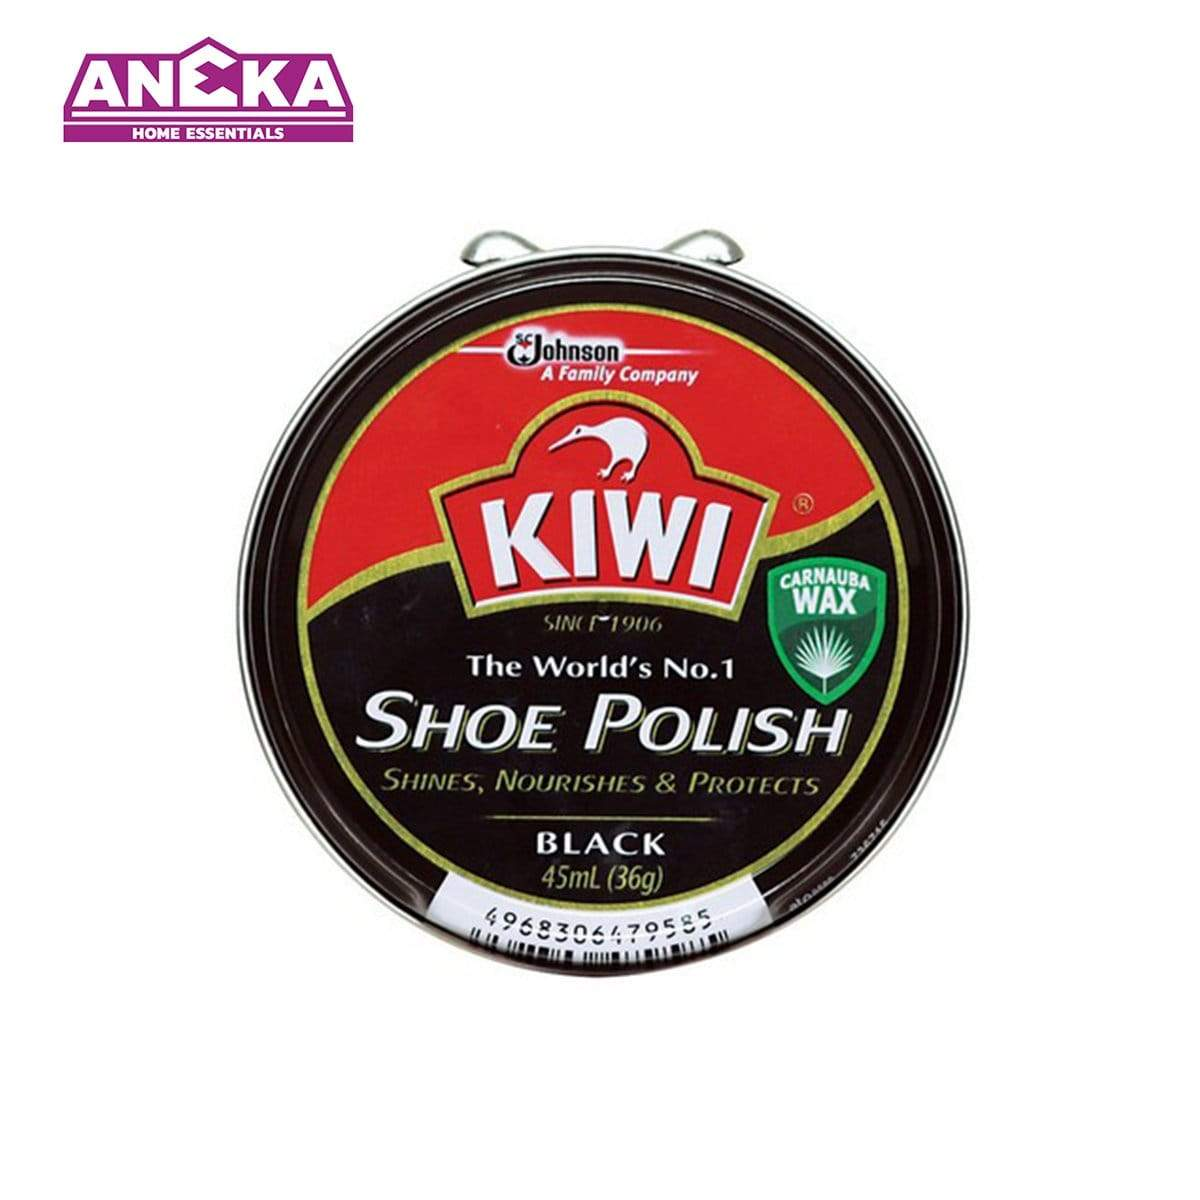 KIWI Shoe Polish Paste Black 36g 646903